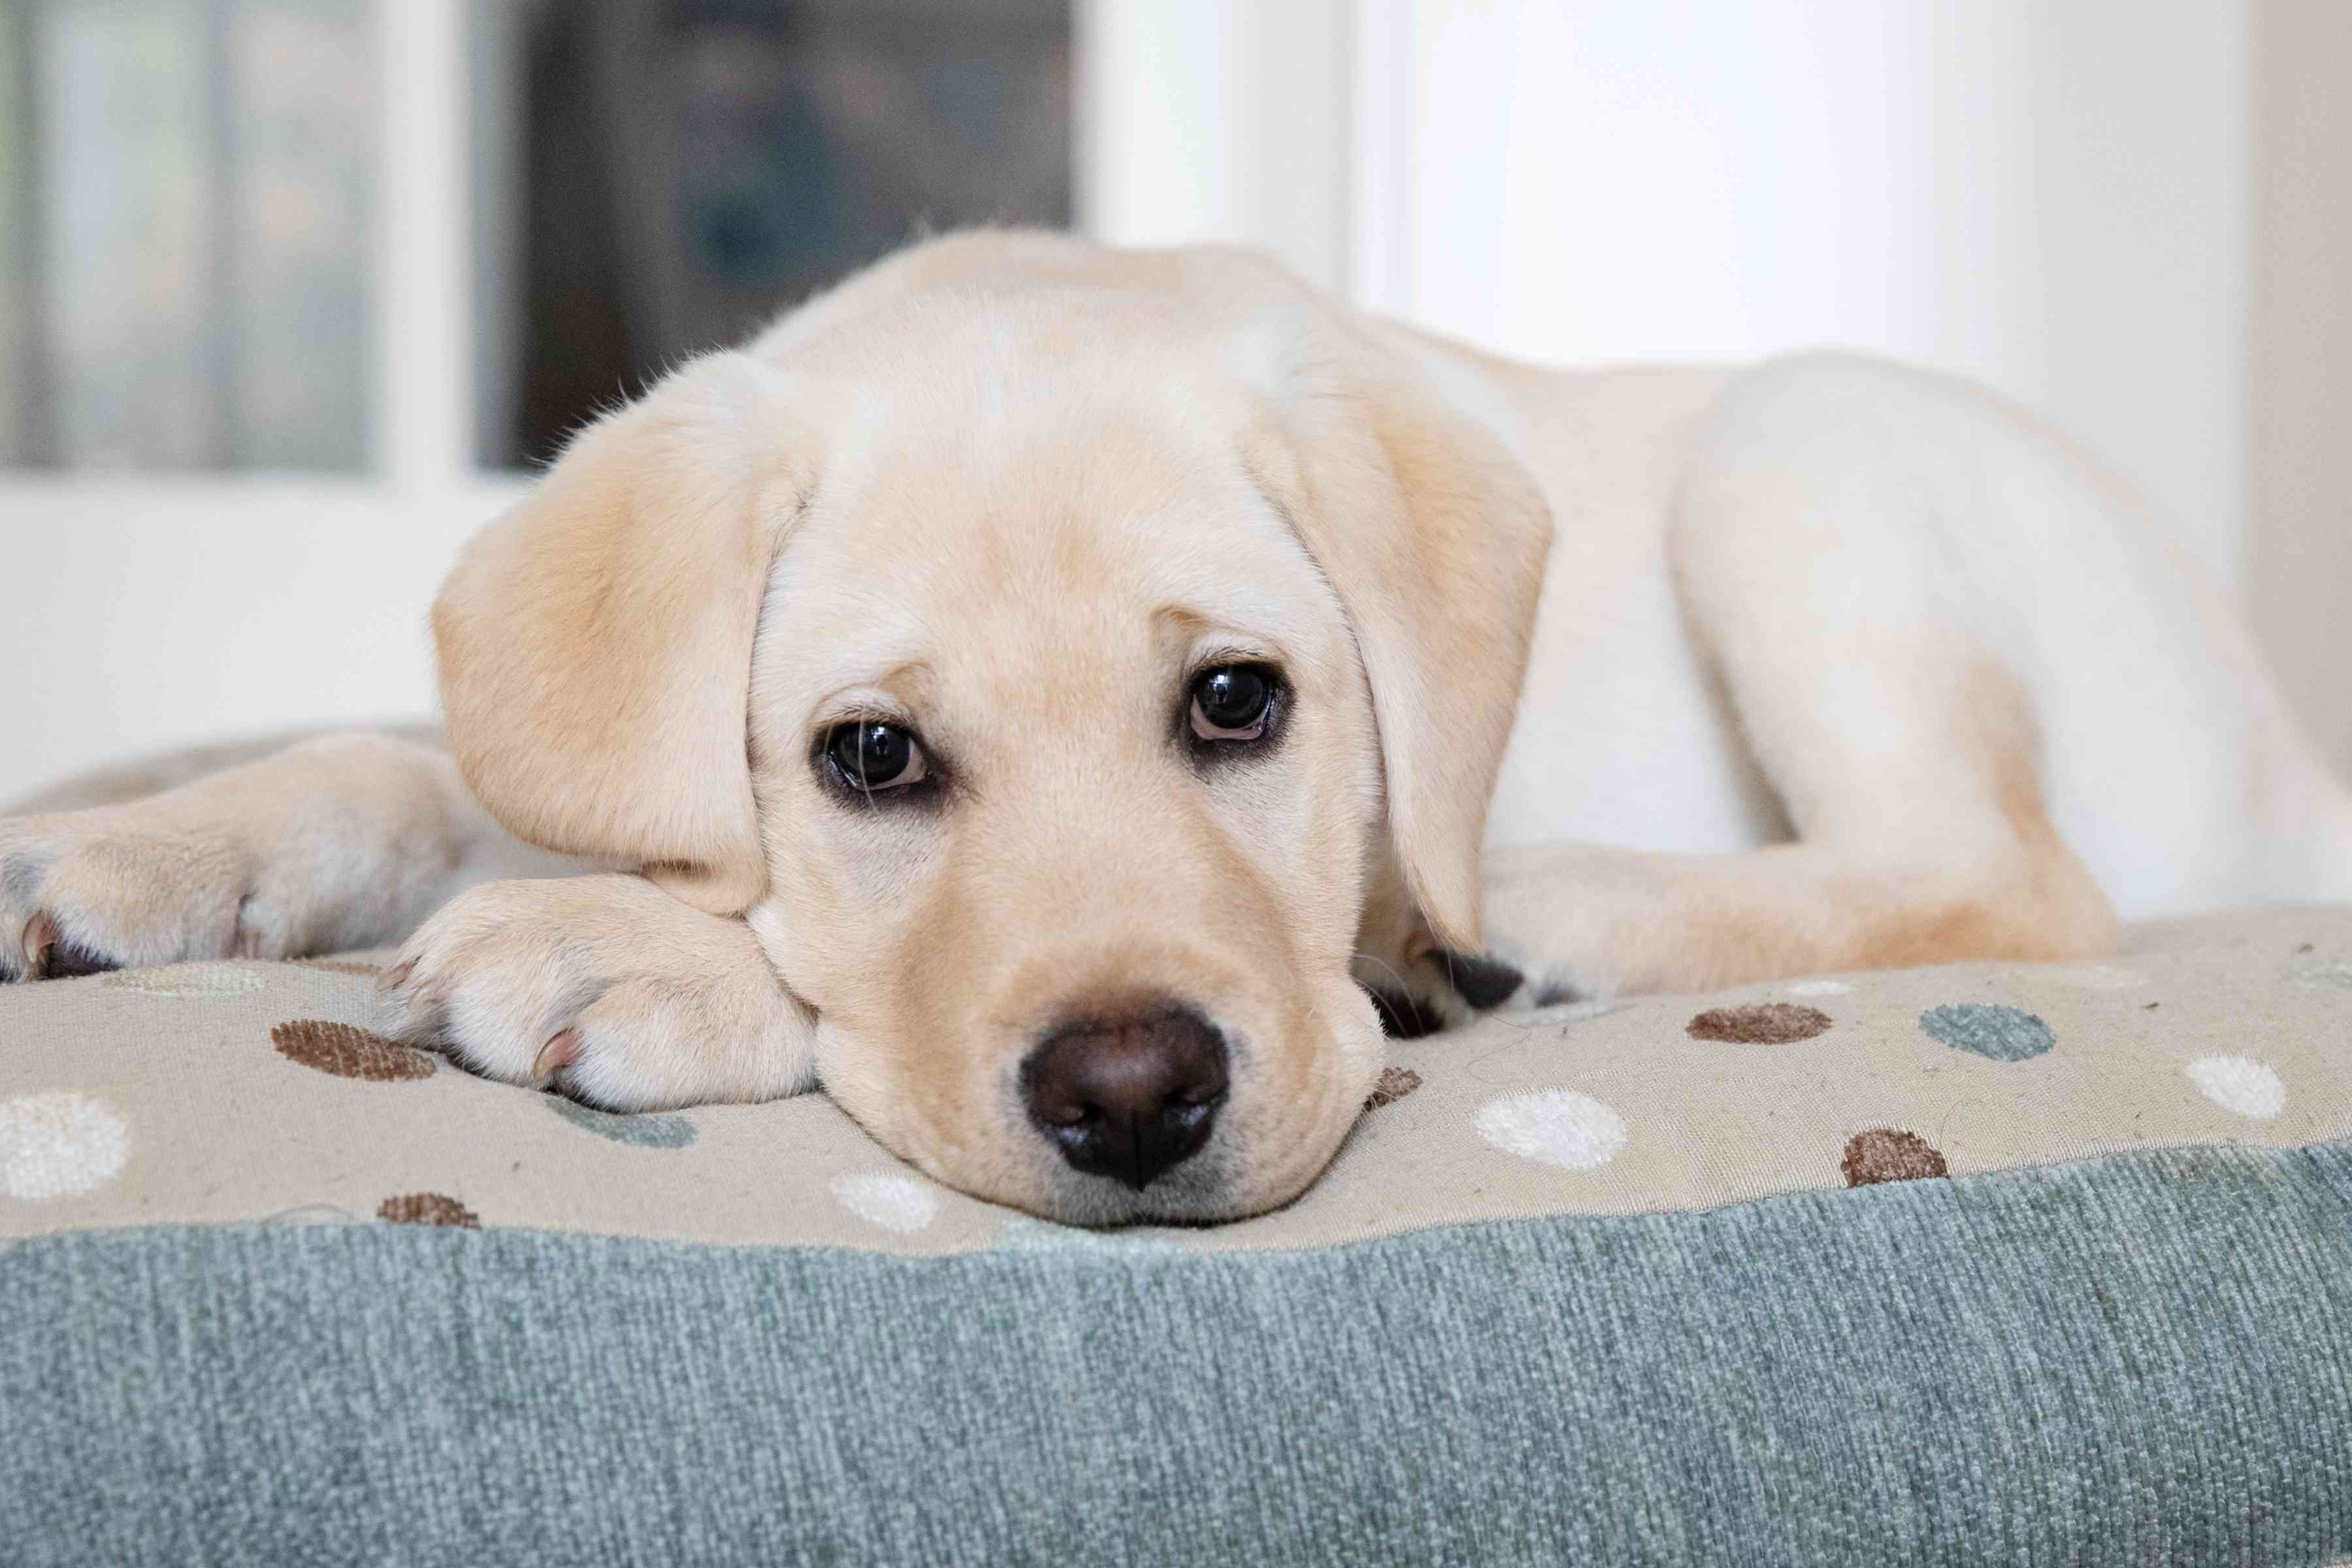 White labrador puppy laying on spotted dog bed closeup